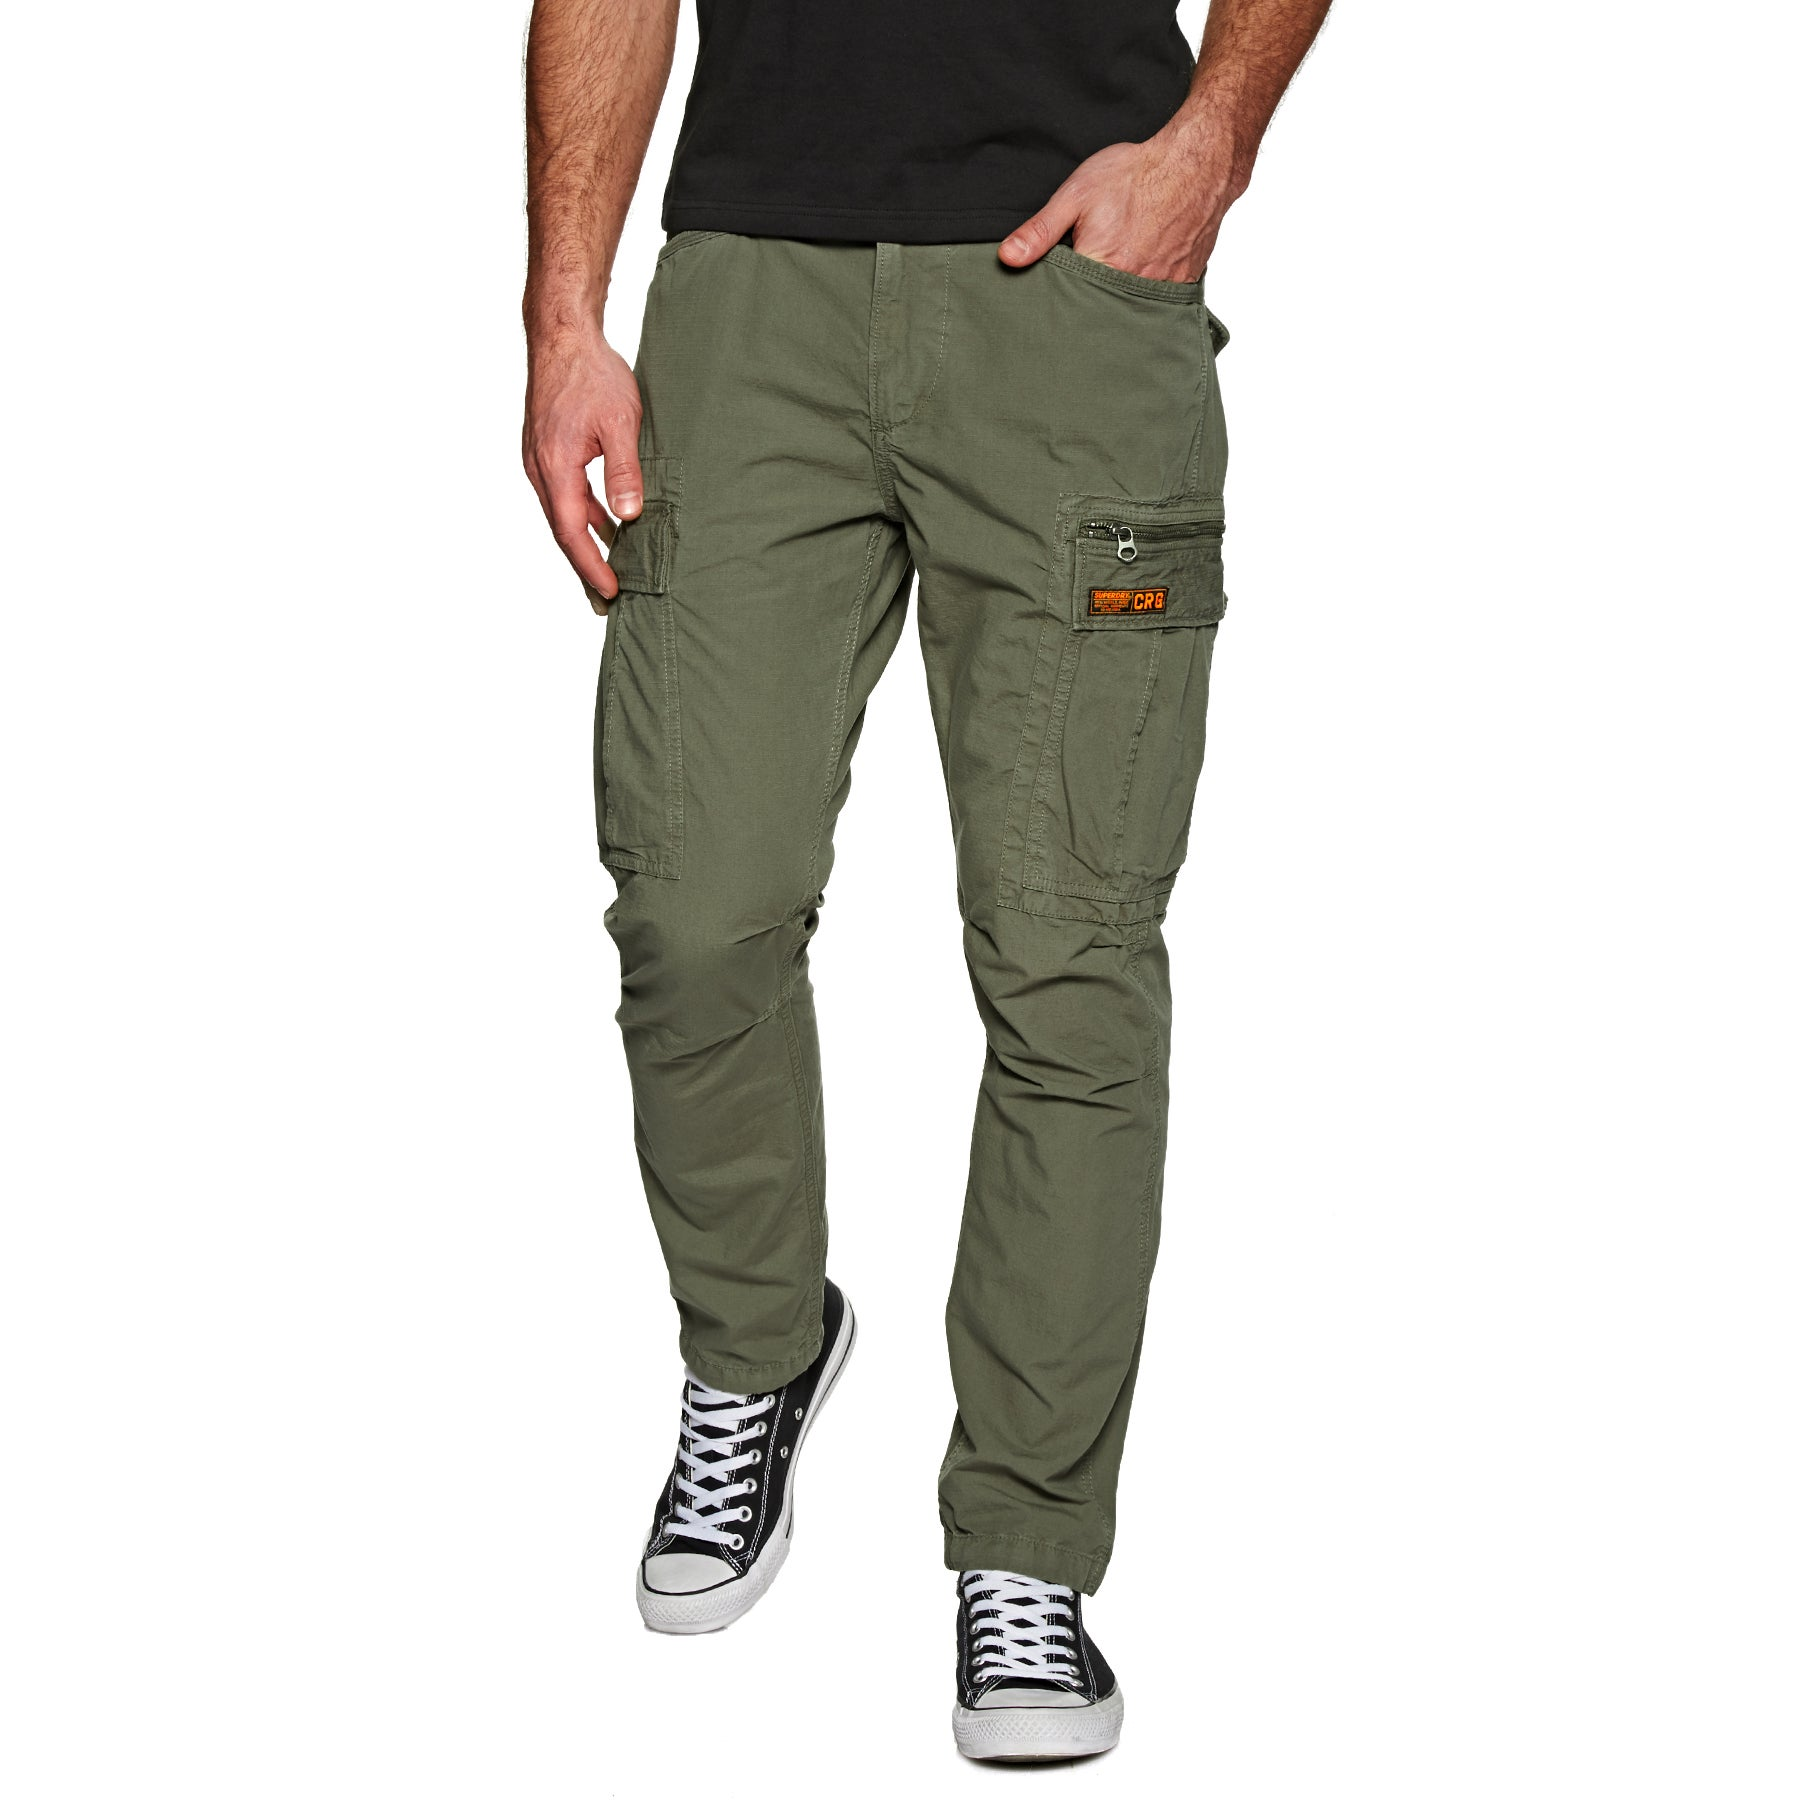 e0283249ec Superdry Parachute Cargo Pants available from Surfdome